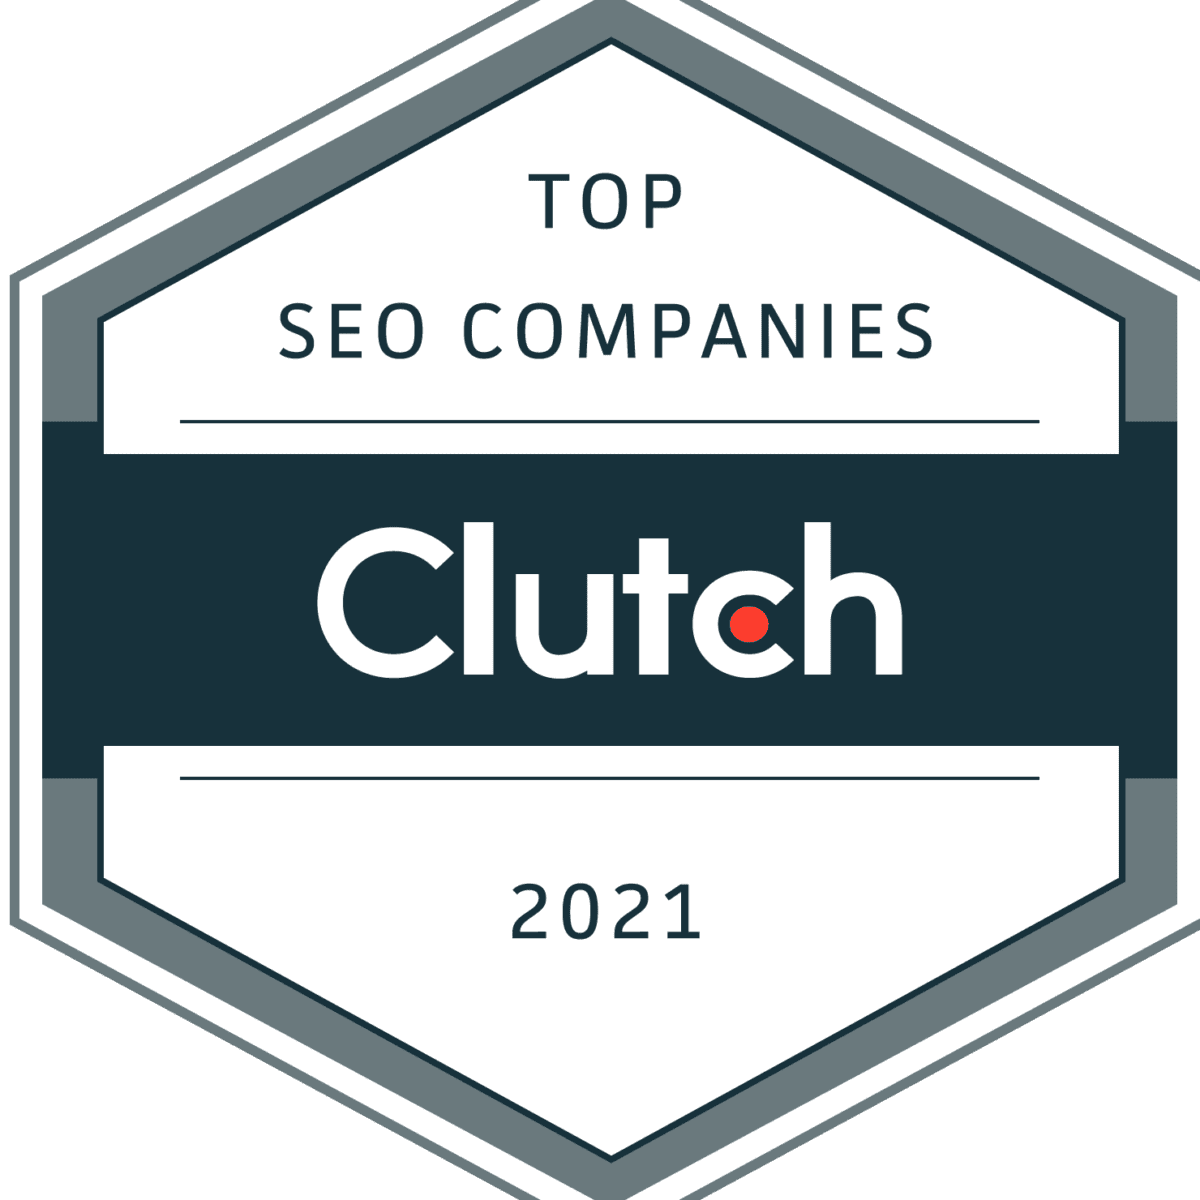 Clutch 2021 Best SEO Company Award